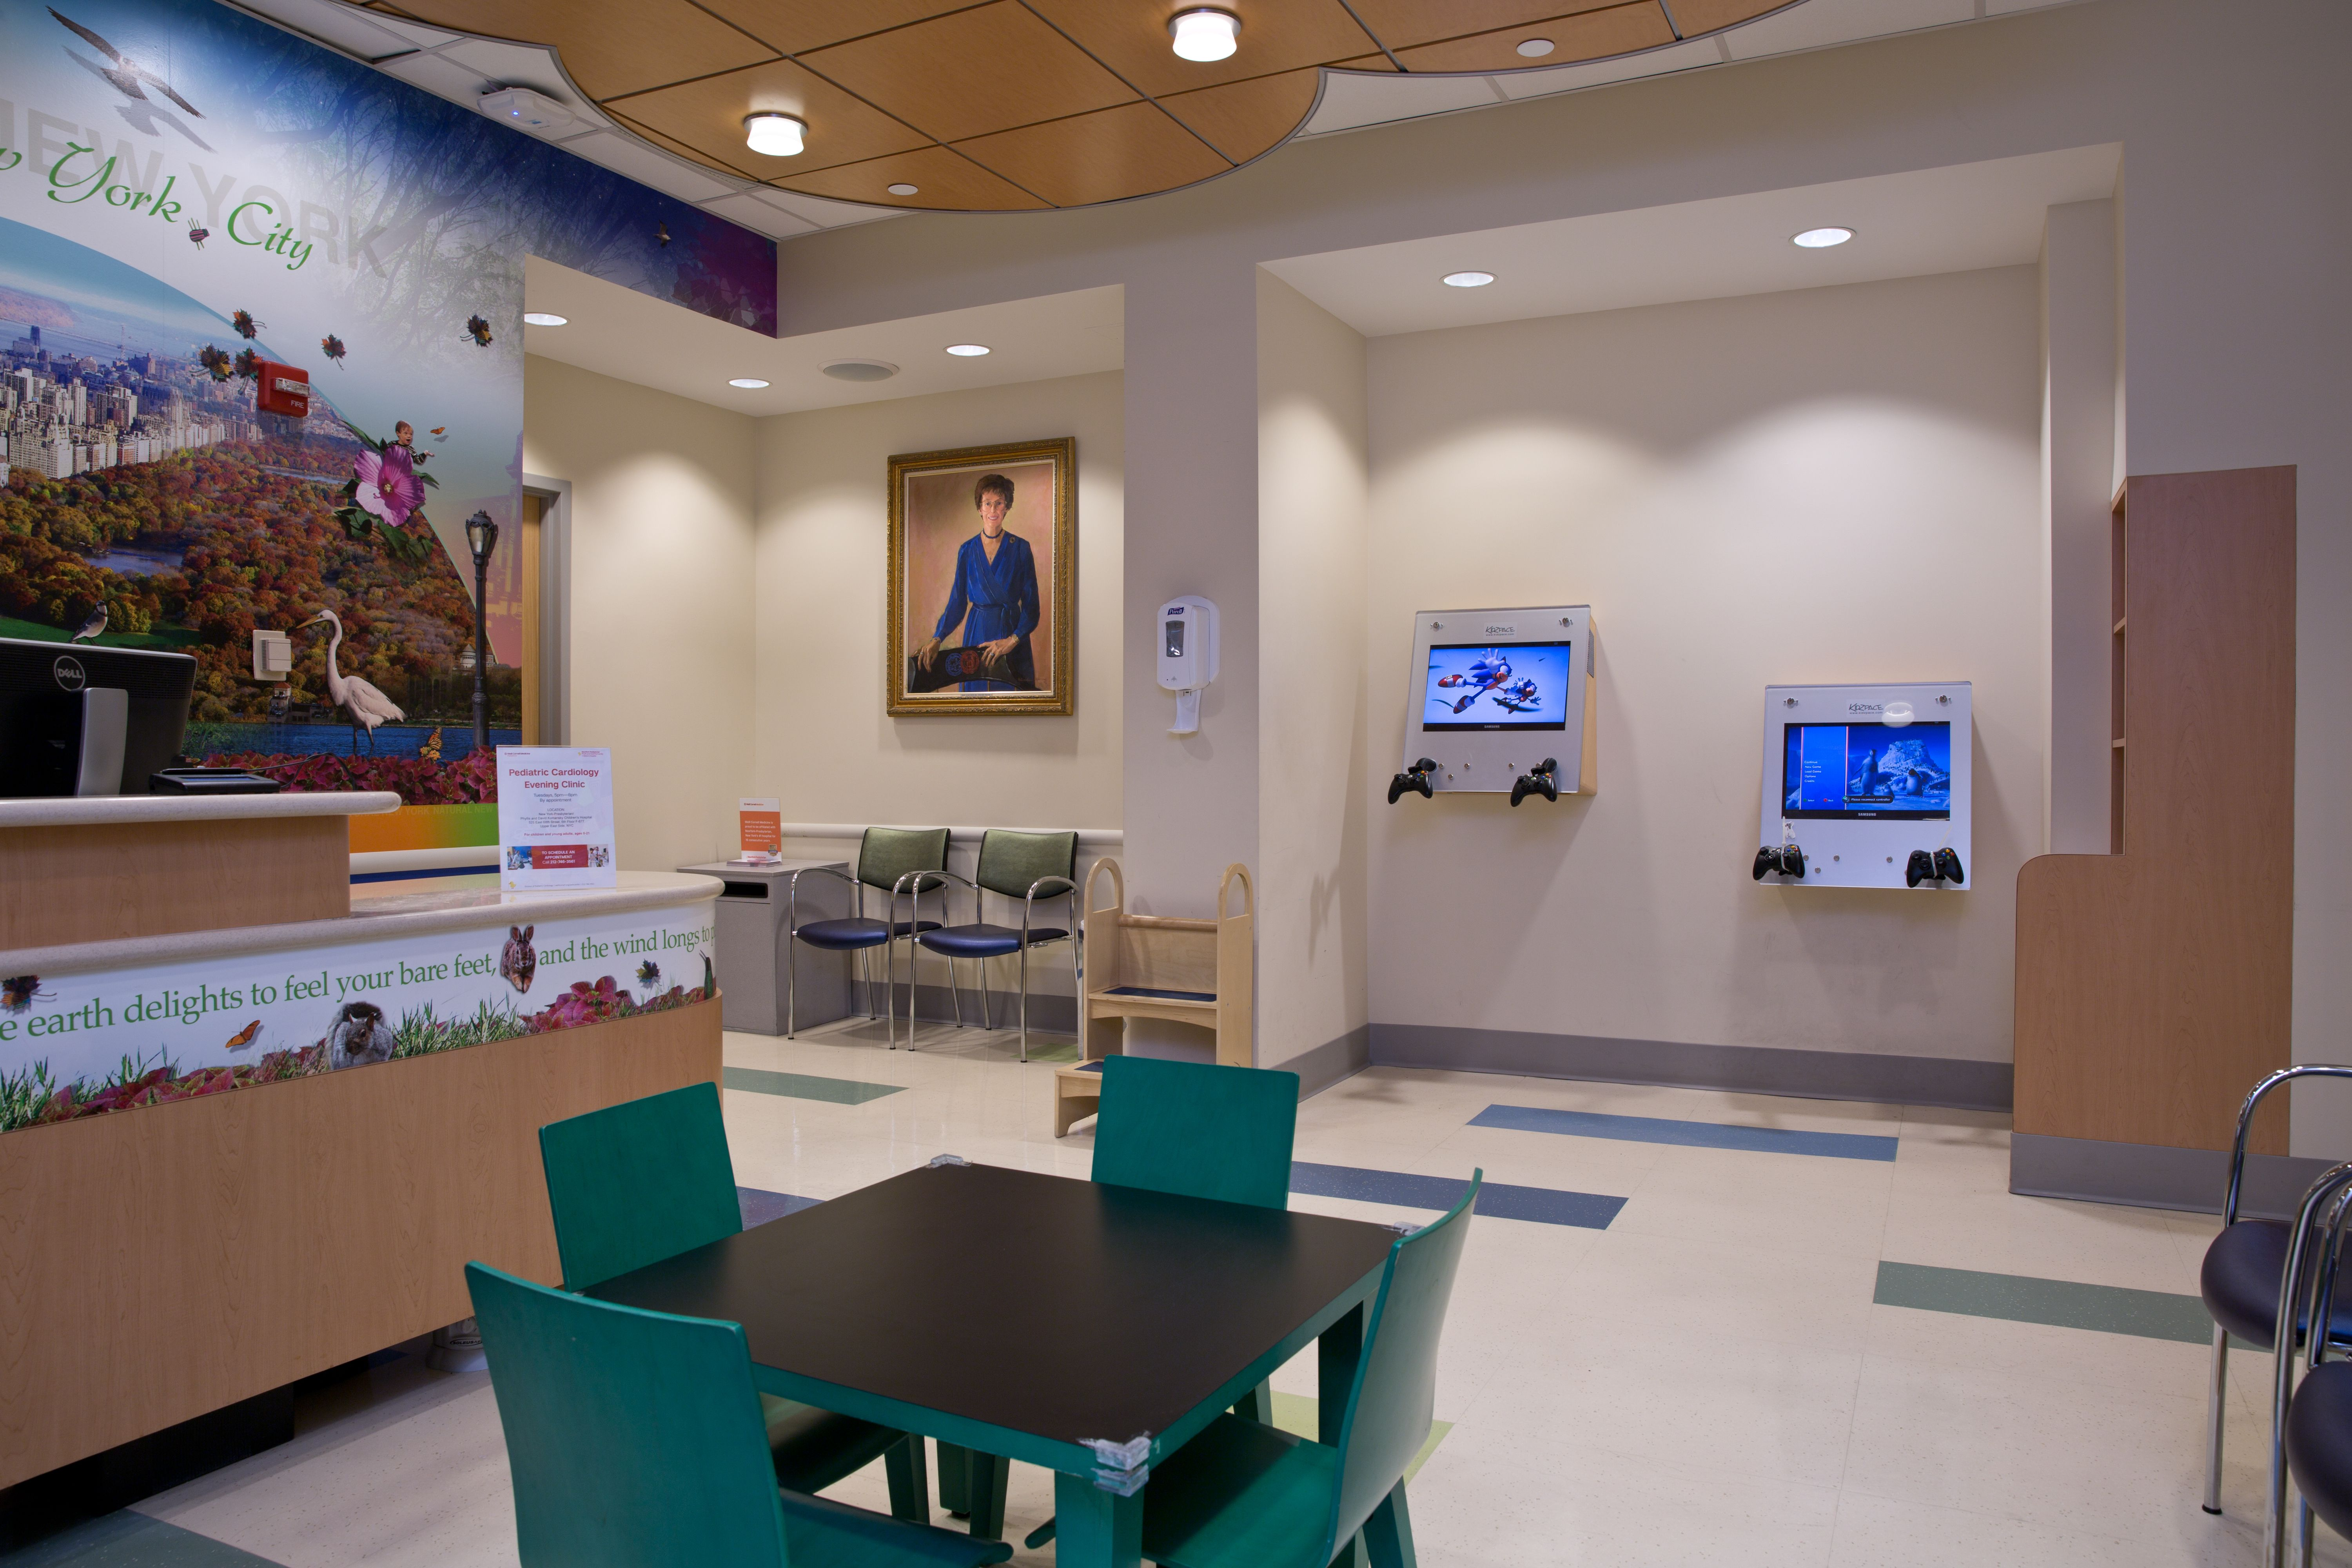 Photo of pediatric cardiology waiting room